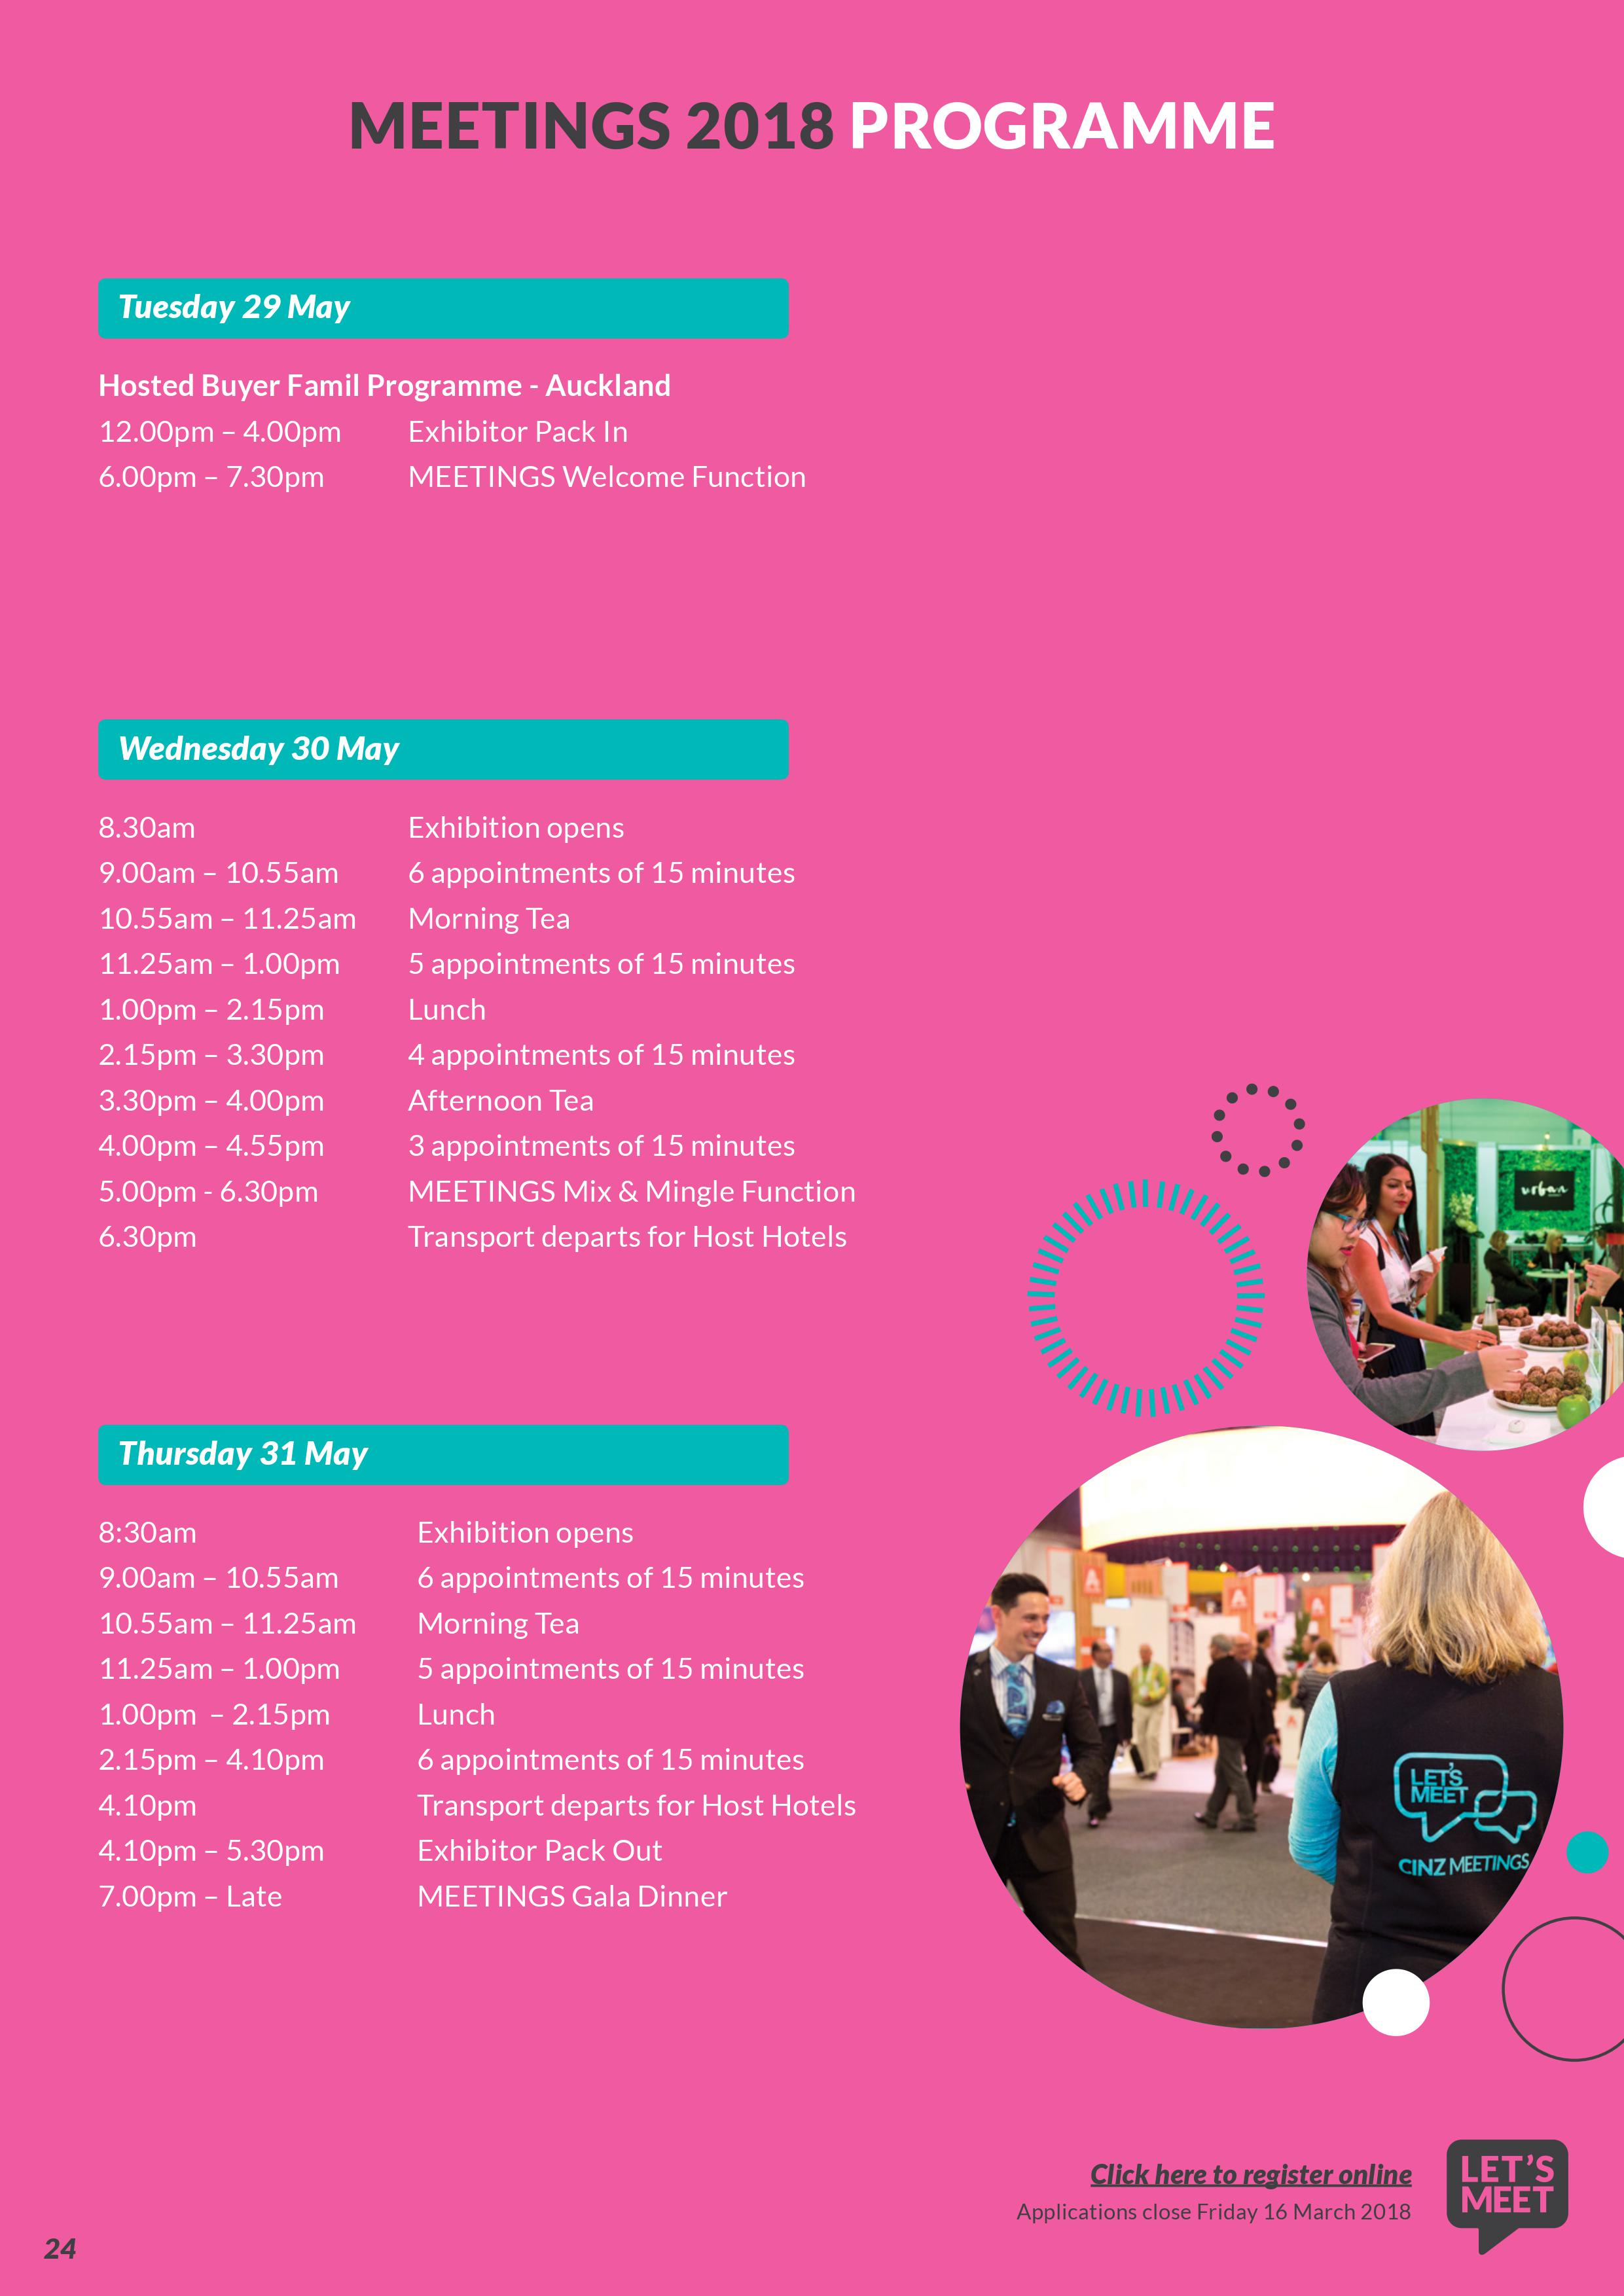 programme for an event